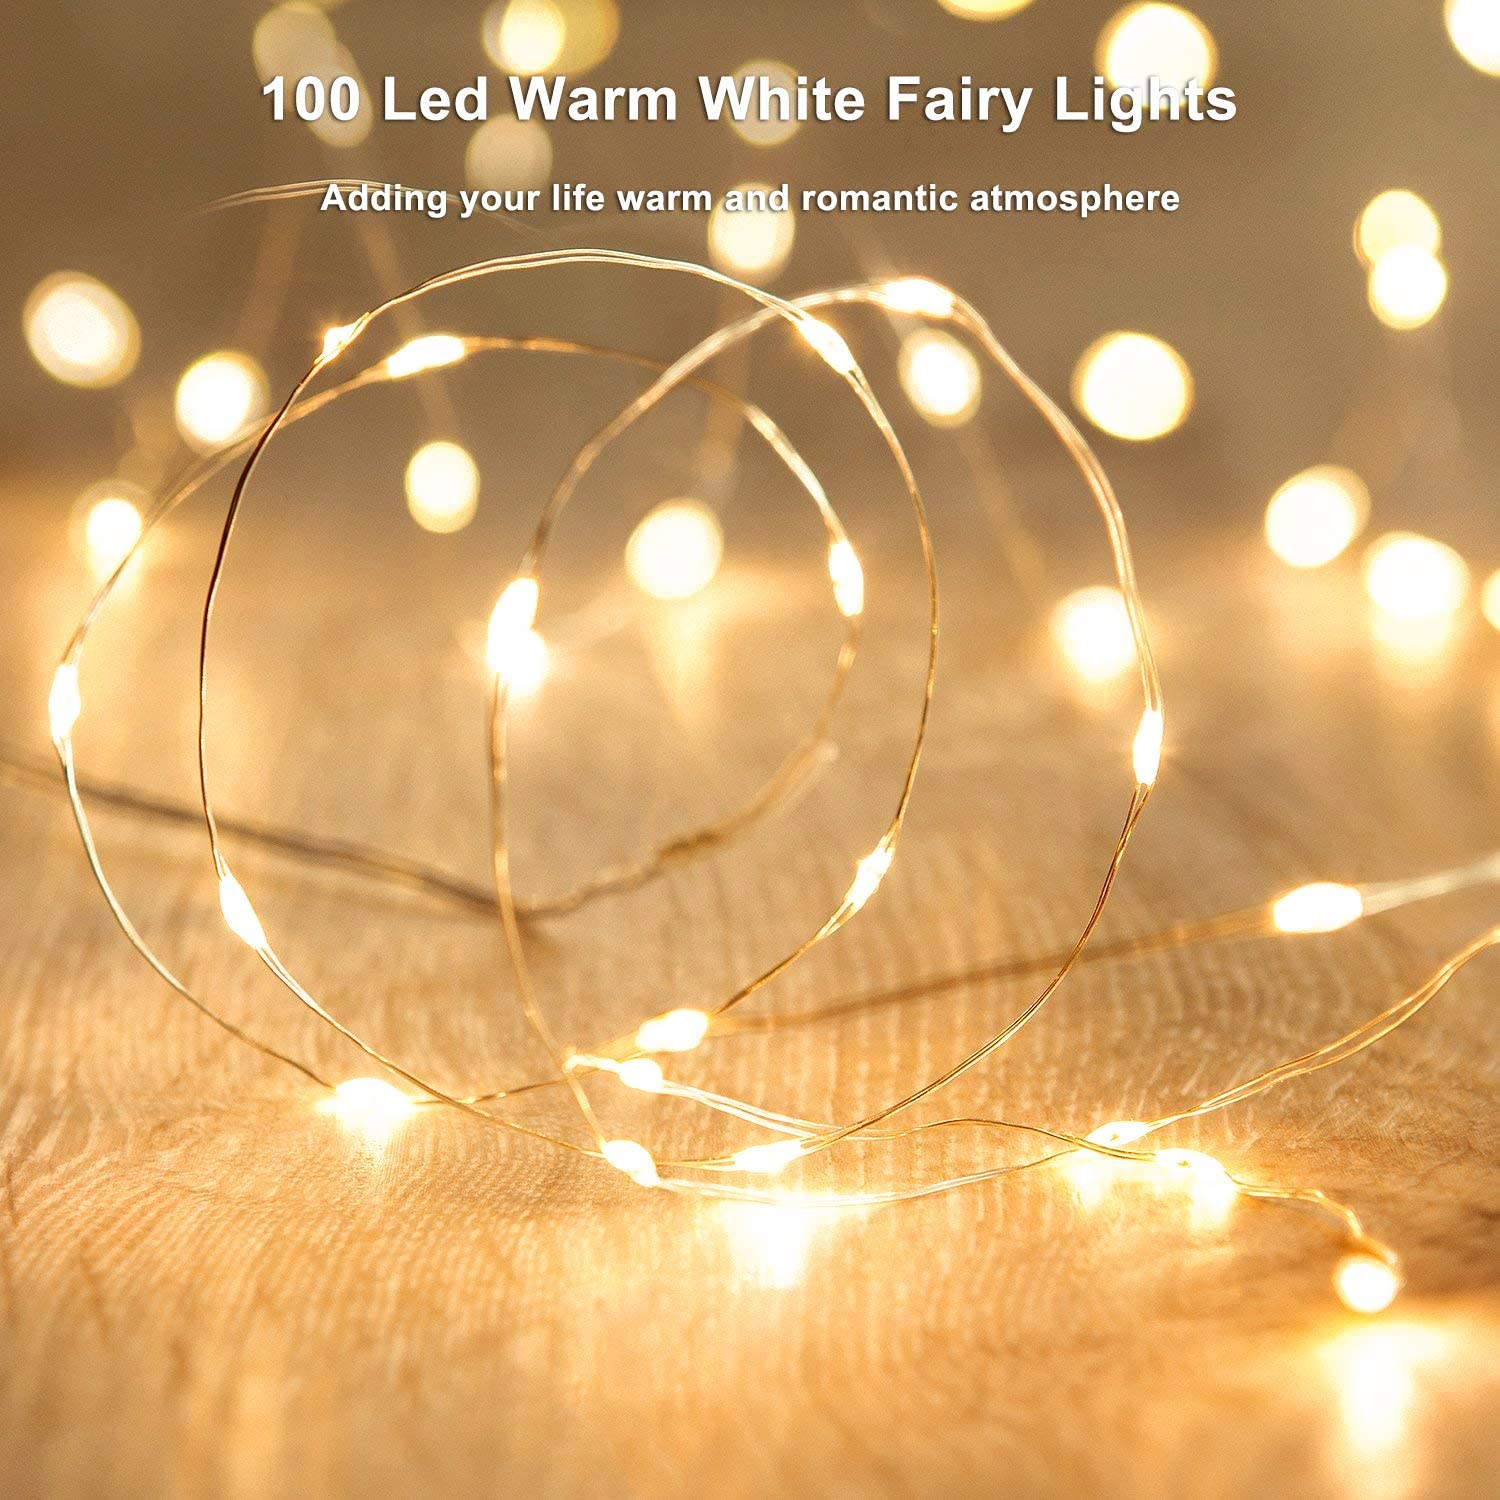 H3ff61b4ca5db418eb28e32b00b0a6fd1F - Led Fairy Lights Copper Wire String 1/2/5/10M Holiday Outdoor Lamp Garland Luces For Christmas Tree Wedding Party Decoration